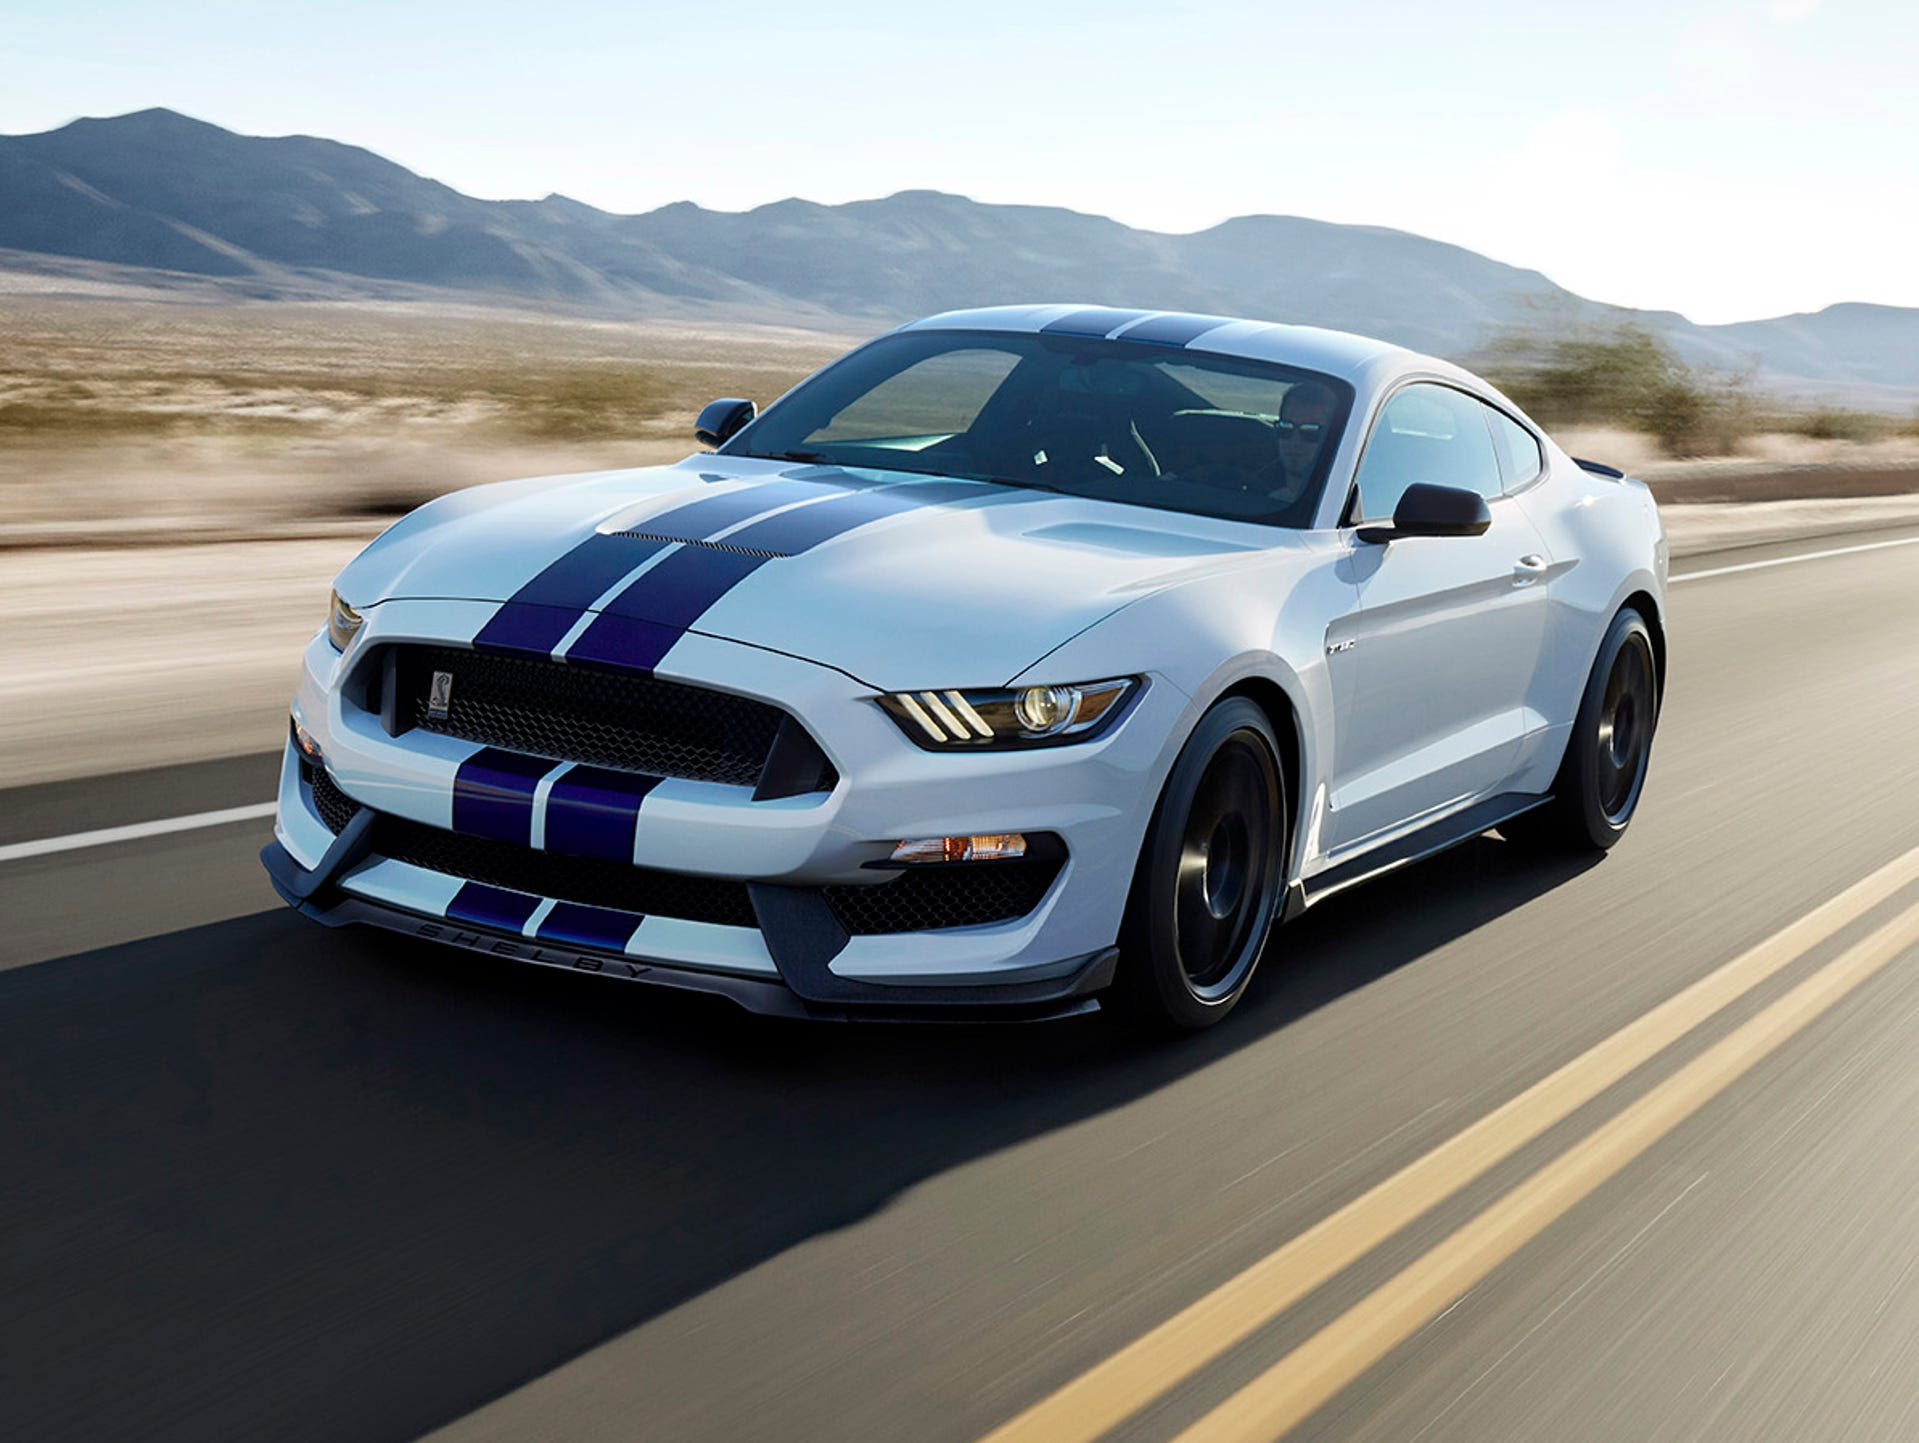 The all-new Shelby GT350 Mustang in Oxford White with